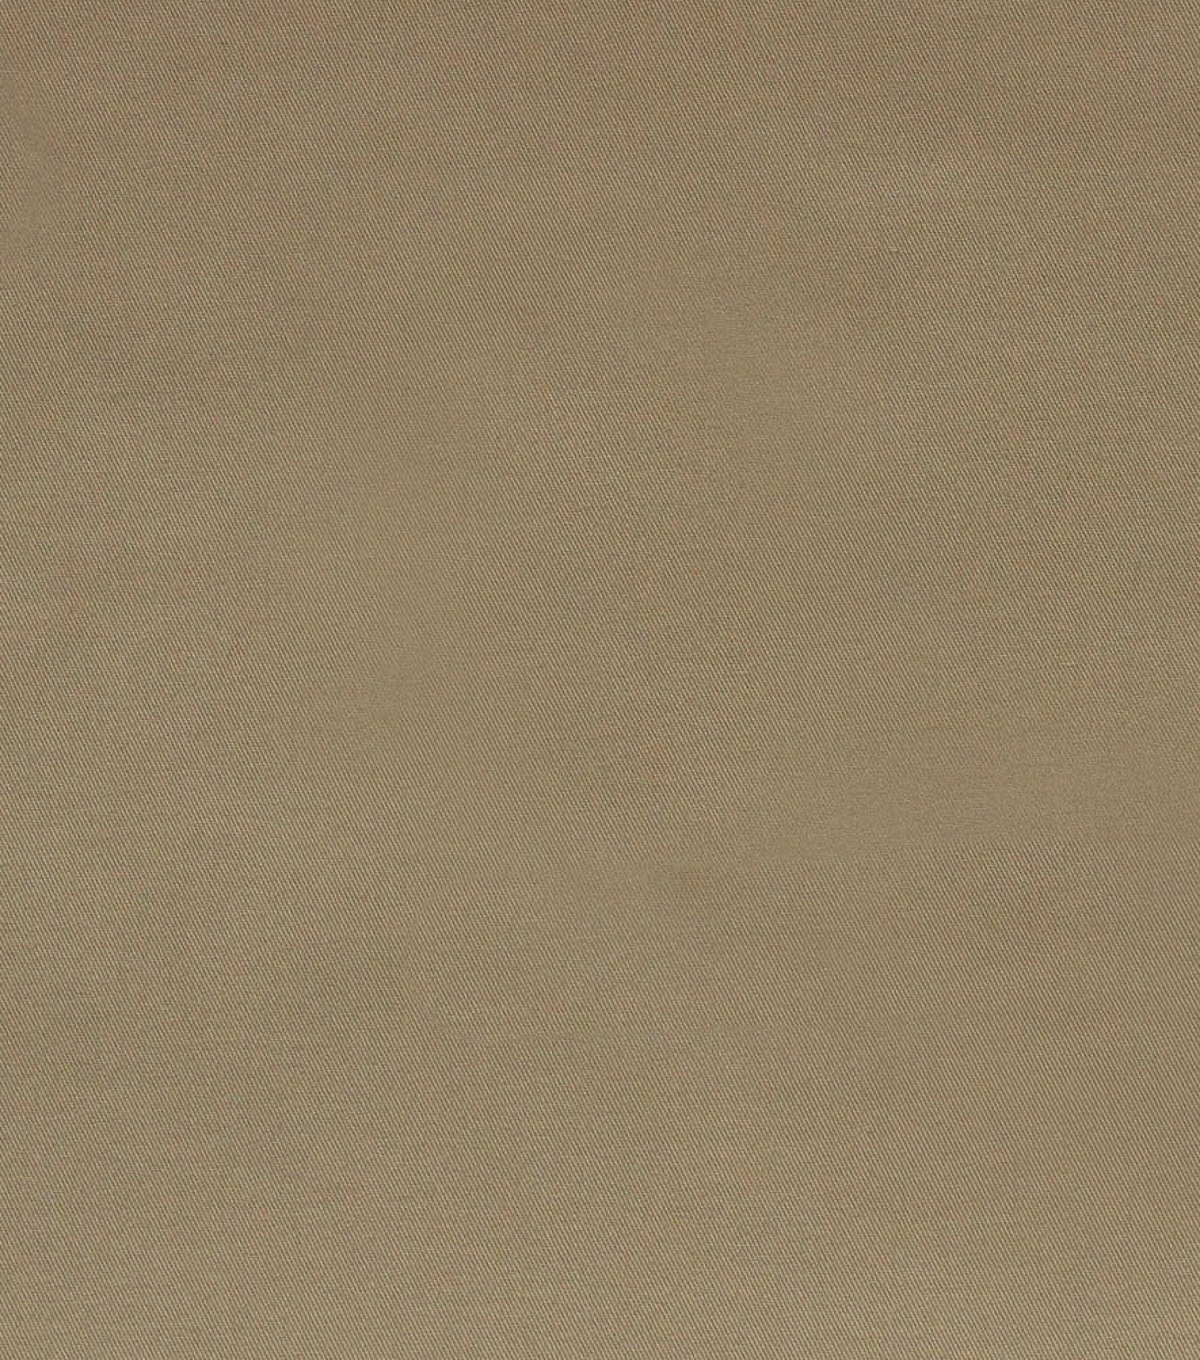 Columbus / Khaki Swatch